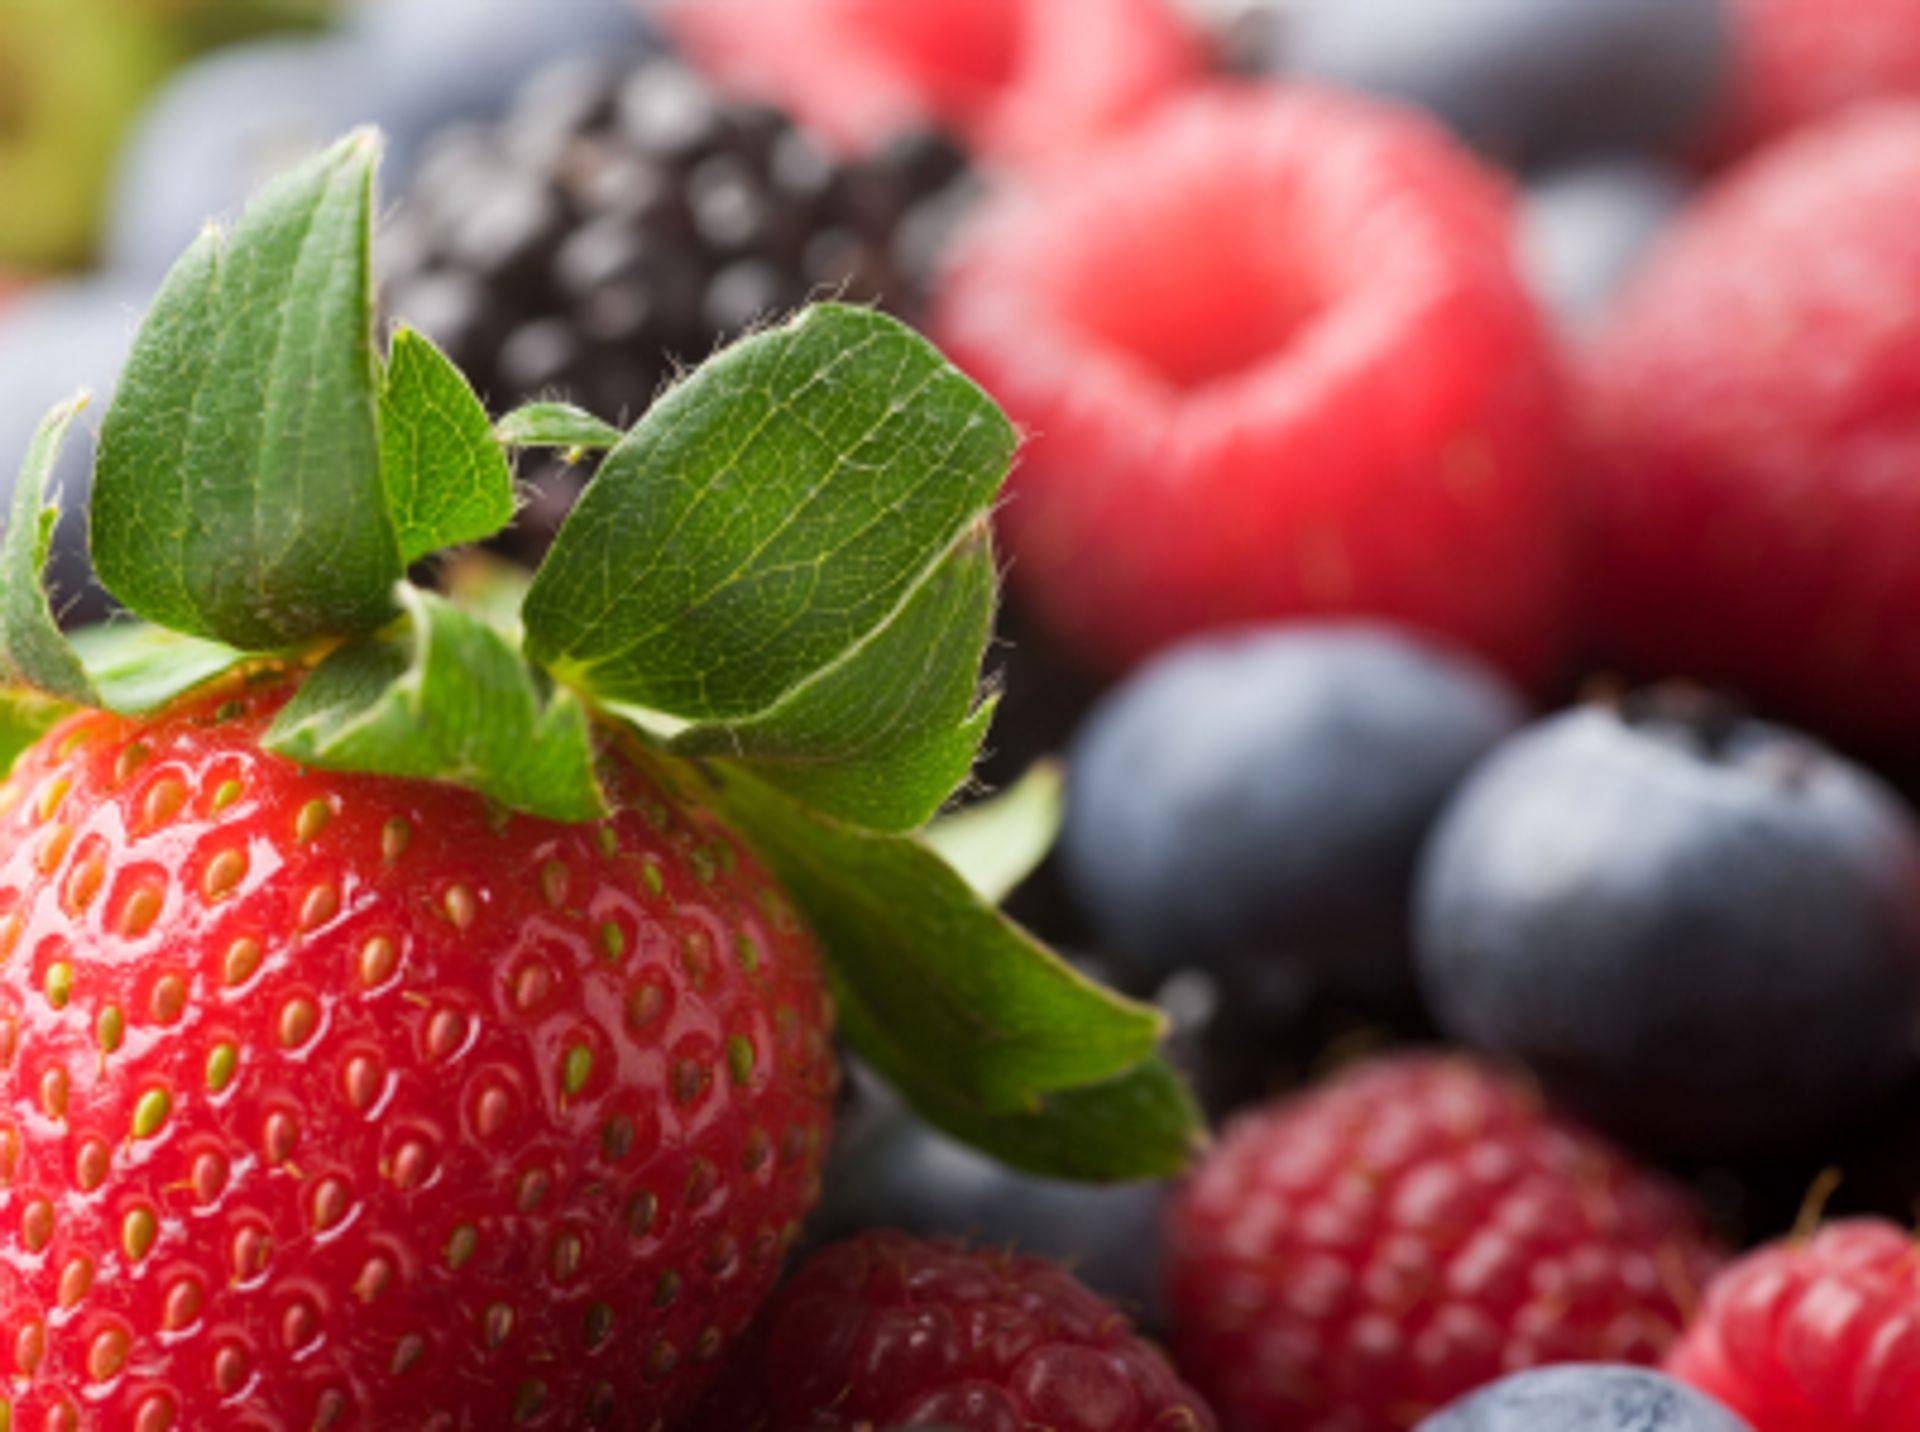 Integrative Nutrition incorporates berries high in polypgenols